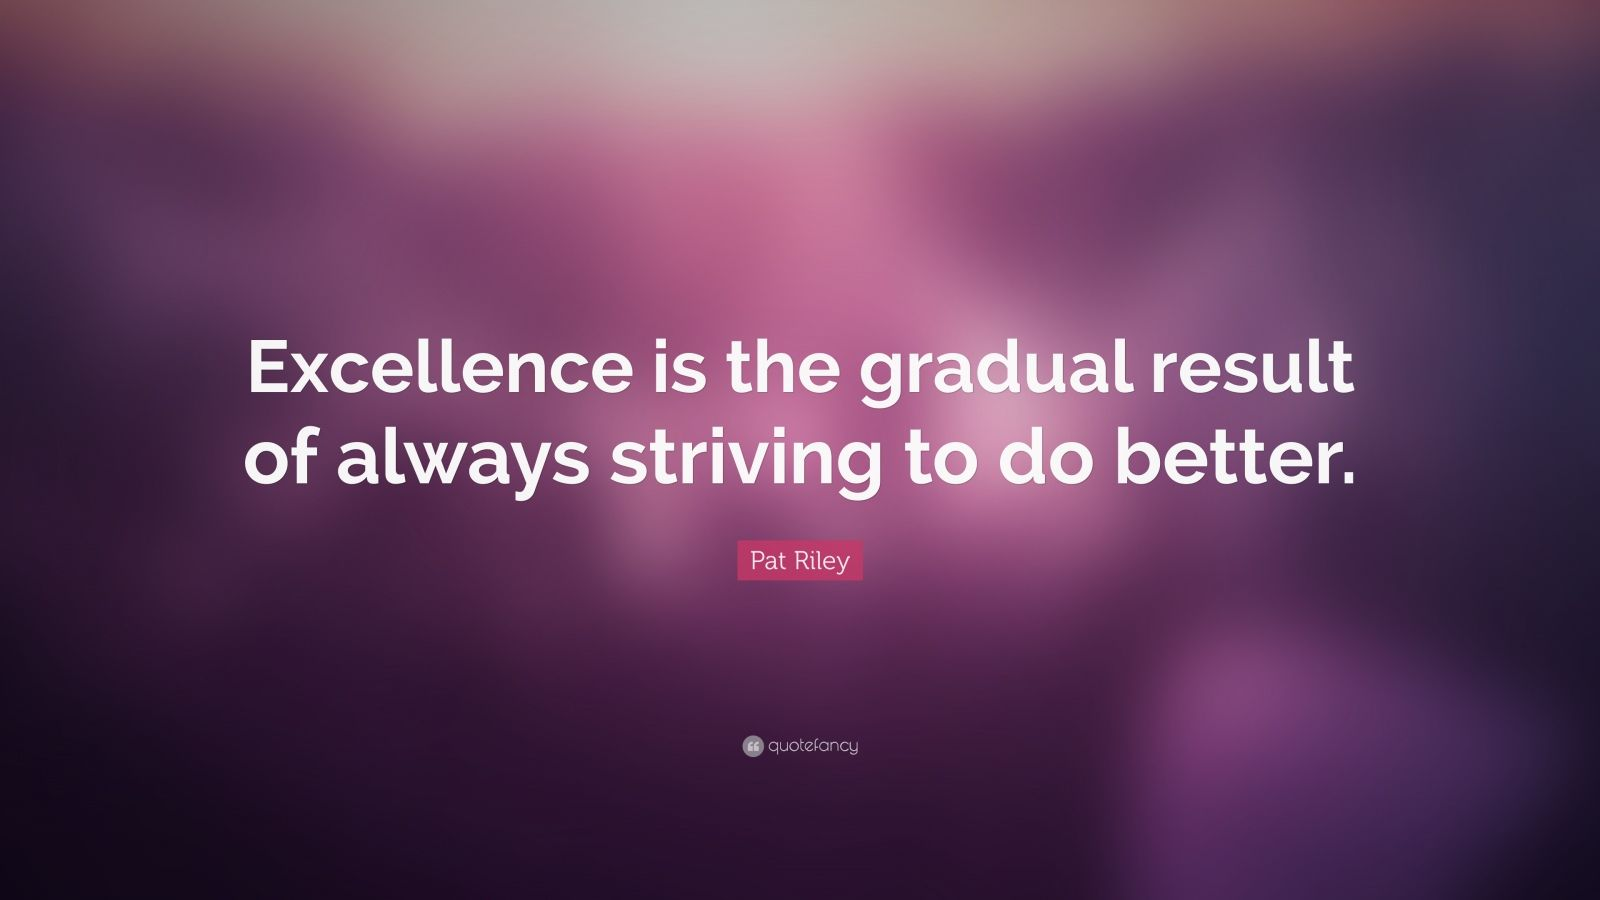 Steve Jobs Motivational Quotes Wallpaper Pat Riley Quote Excellence Is The Gradual Result Of